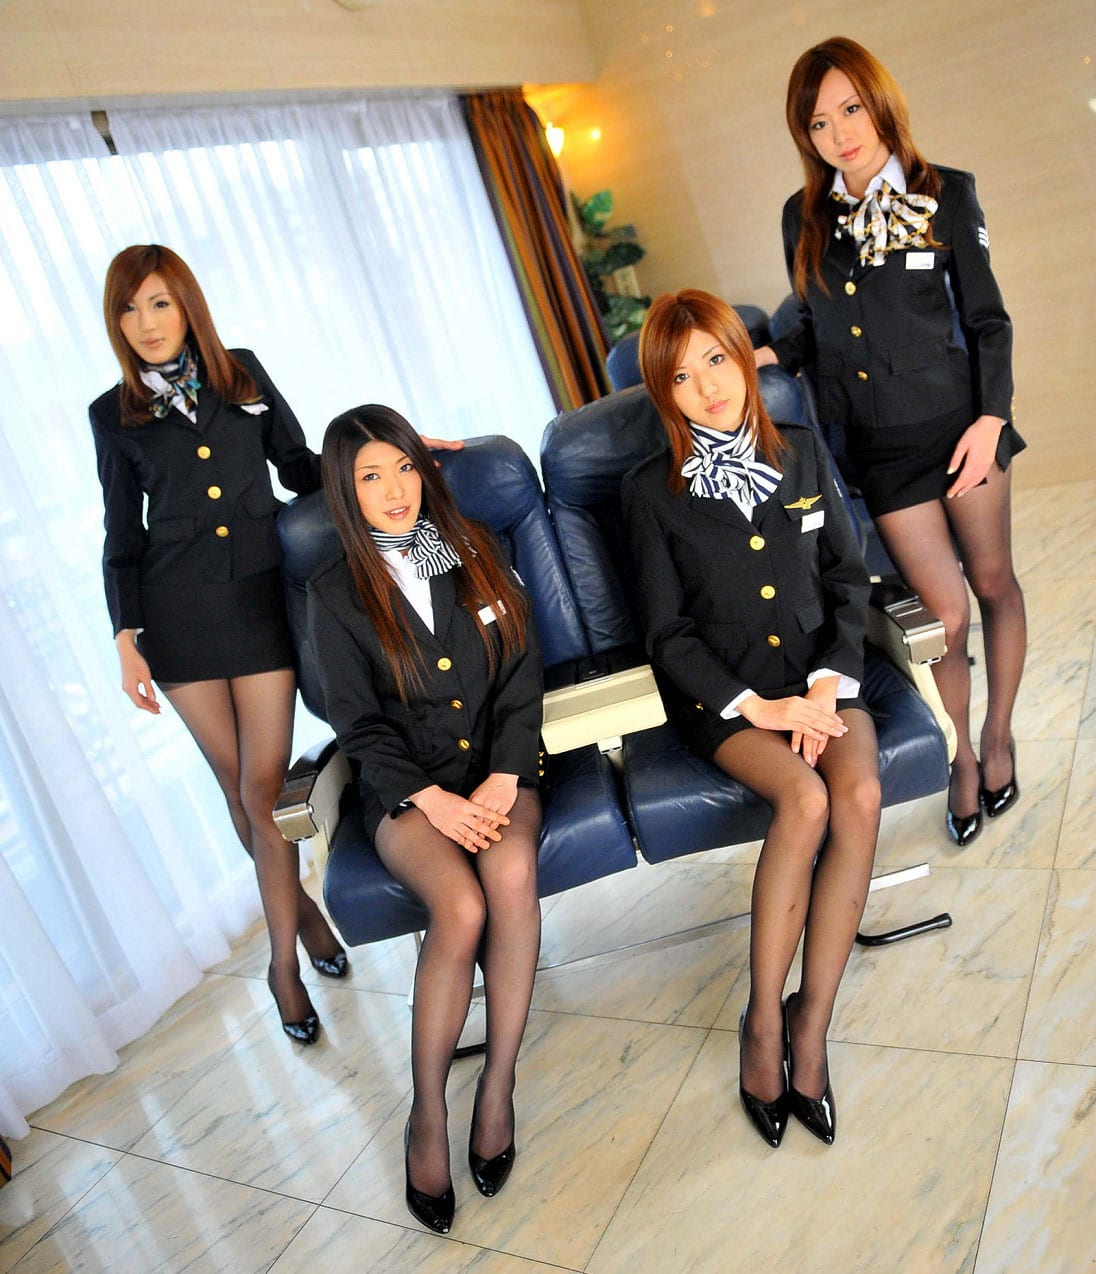 Japanese Flight Attendant Porn - Why Are Flight Attendants So Sexy?